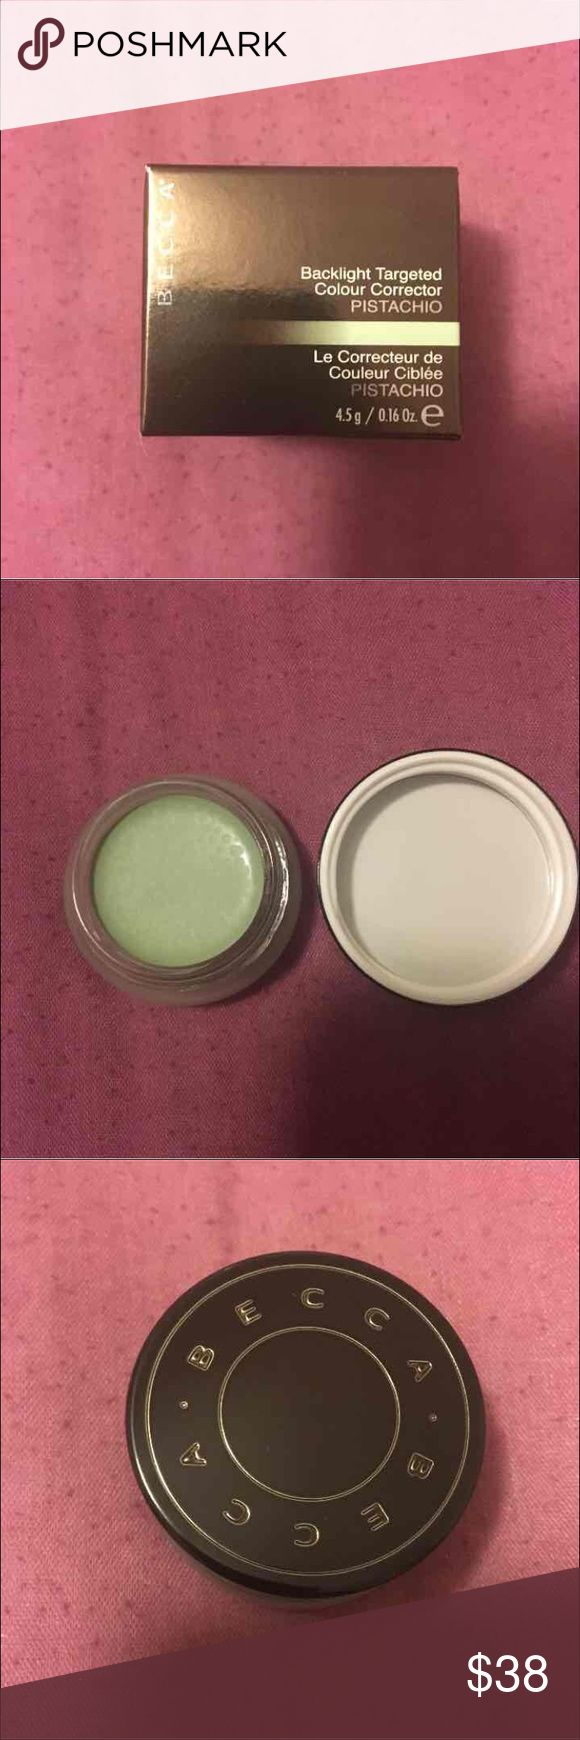 Becca Colour Corrector Pistachio Brand new in box. Corrects redness. BECCA Makeup